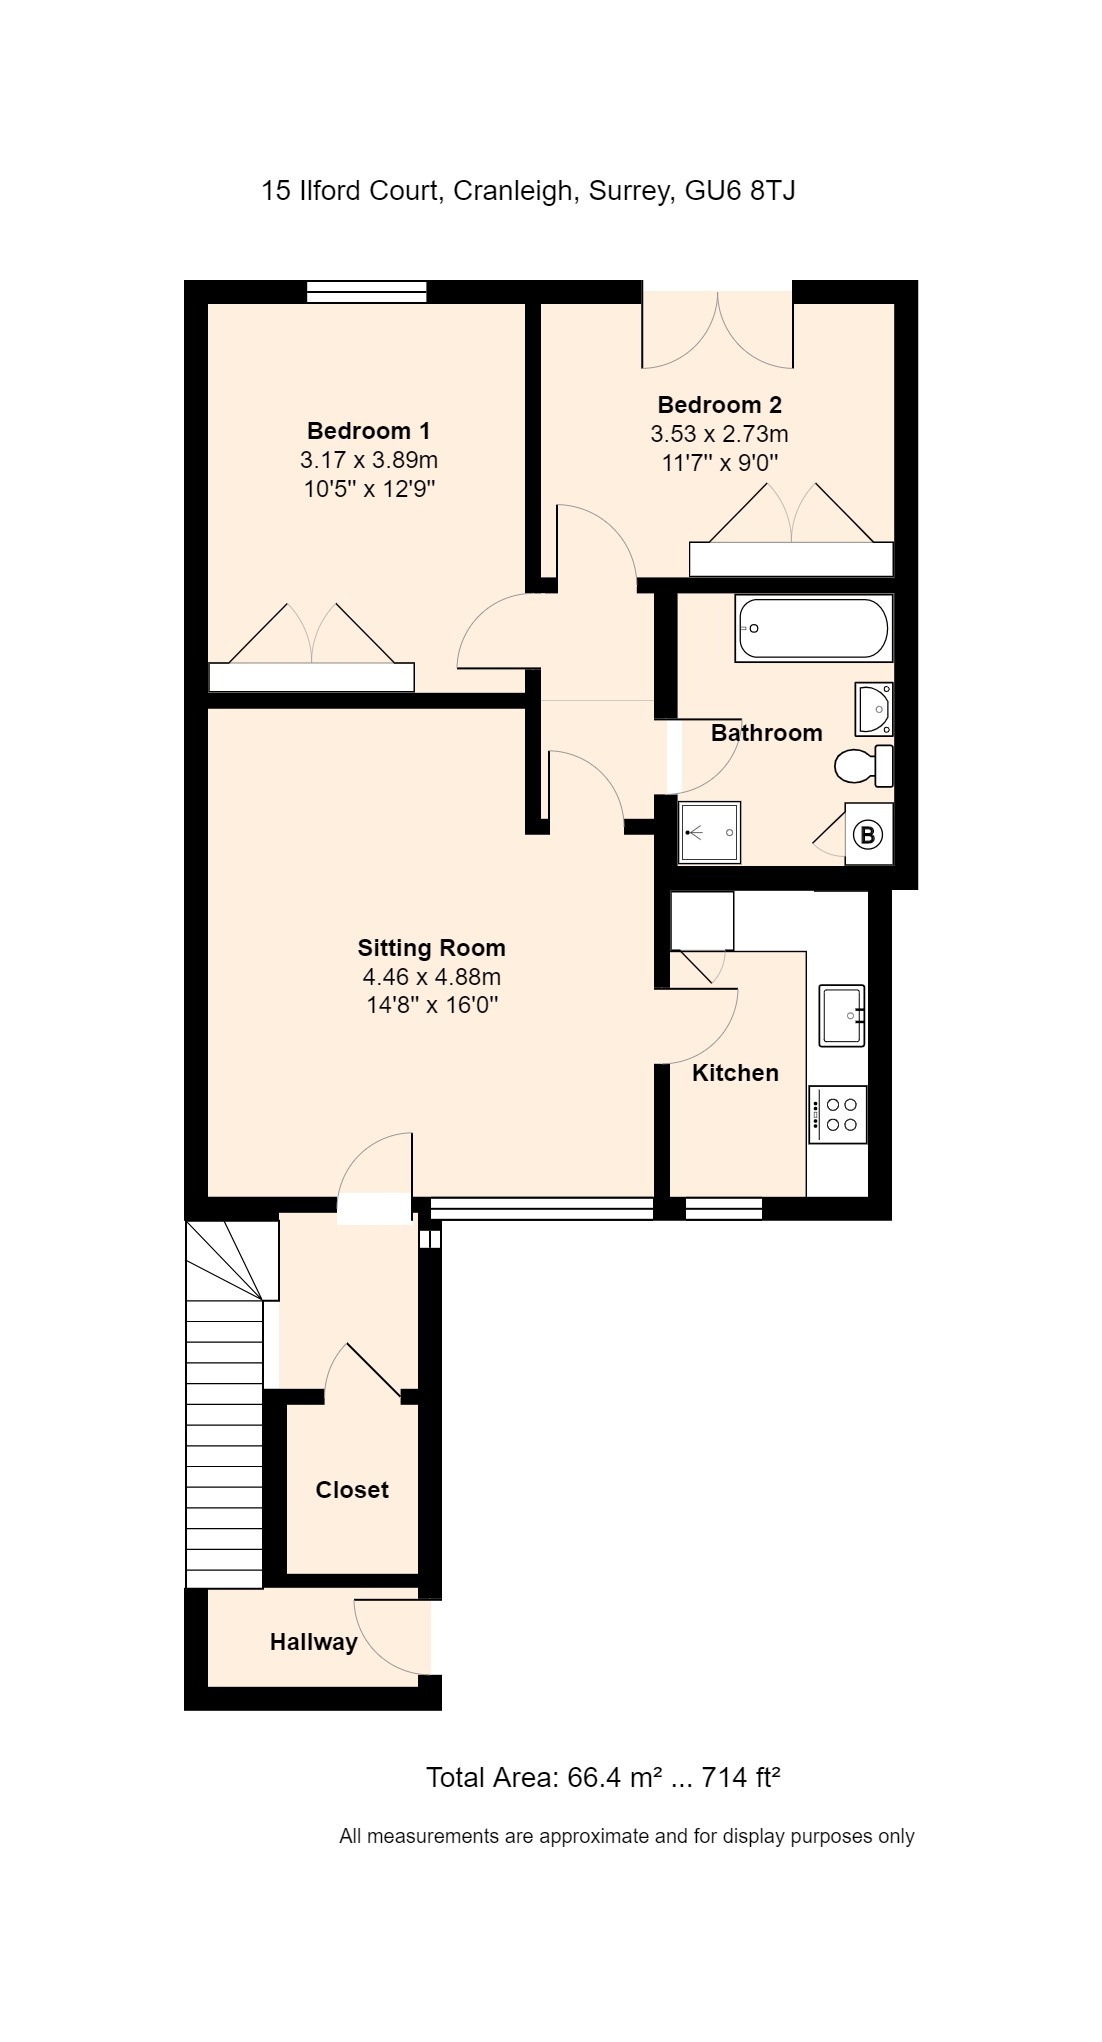 15 Ilford Court Floorplan